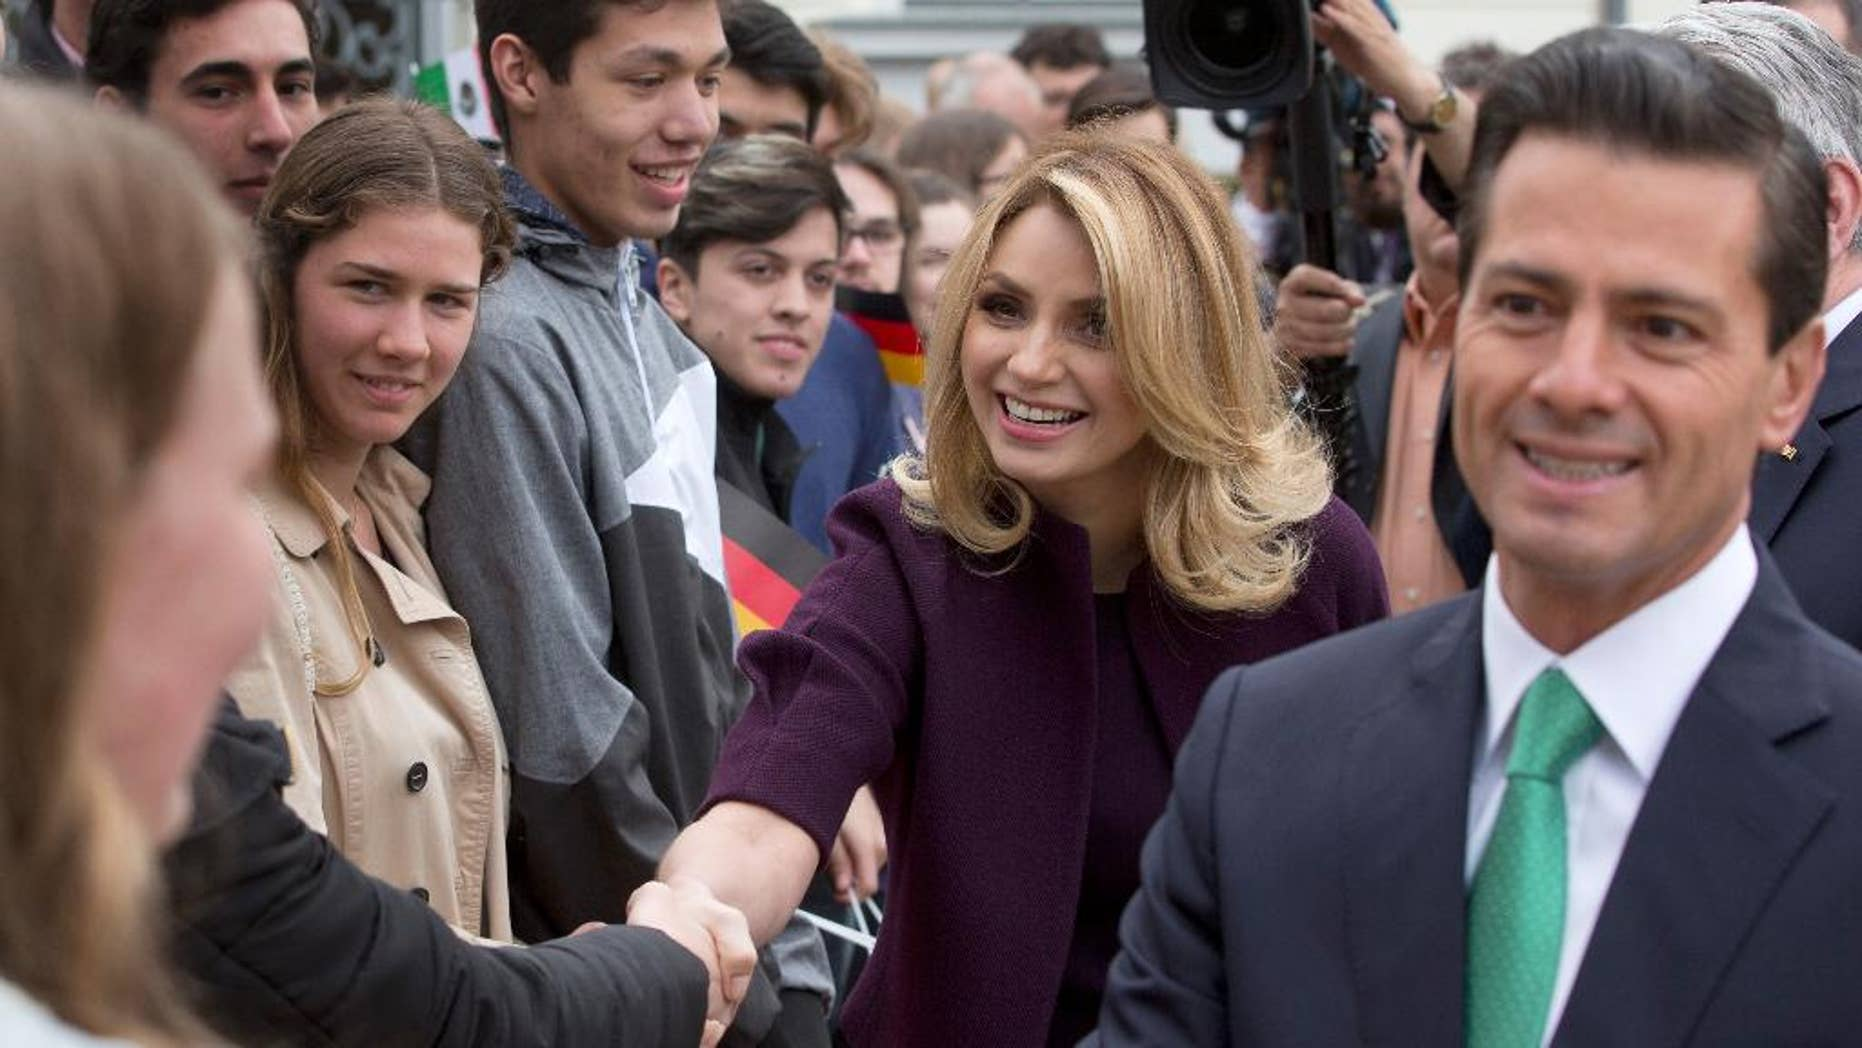 FILE - In this April 11, 2016 file photo, Mexico's President Enrique Pena Nieto, right, and his wife Angelica Rivera de Pena greet students as they arrive to meet with Germany's President Joachim Gauck at Bellevue Palace in Berlin, Germany.  Pena Nieto apologized on Monday, July 18, 2016 for a 2014 scandal involving a mansion his wife bought from a firm that won lucrative contracts with his administration. (AP Photo/Michael Sohn, File)